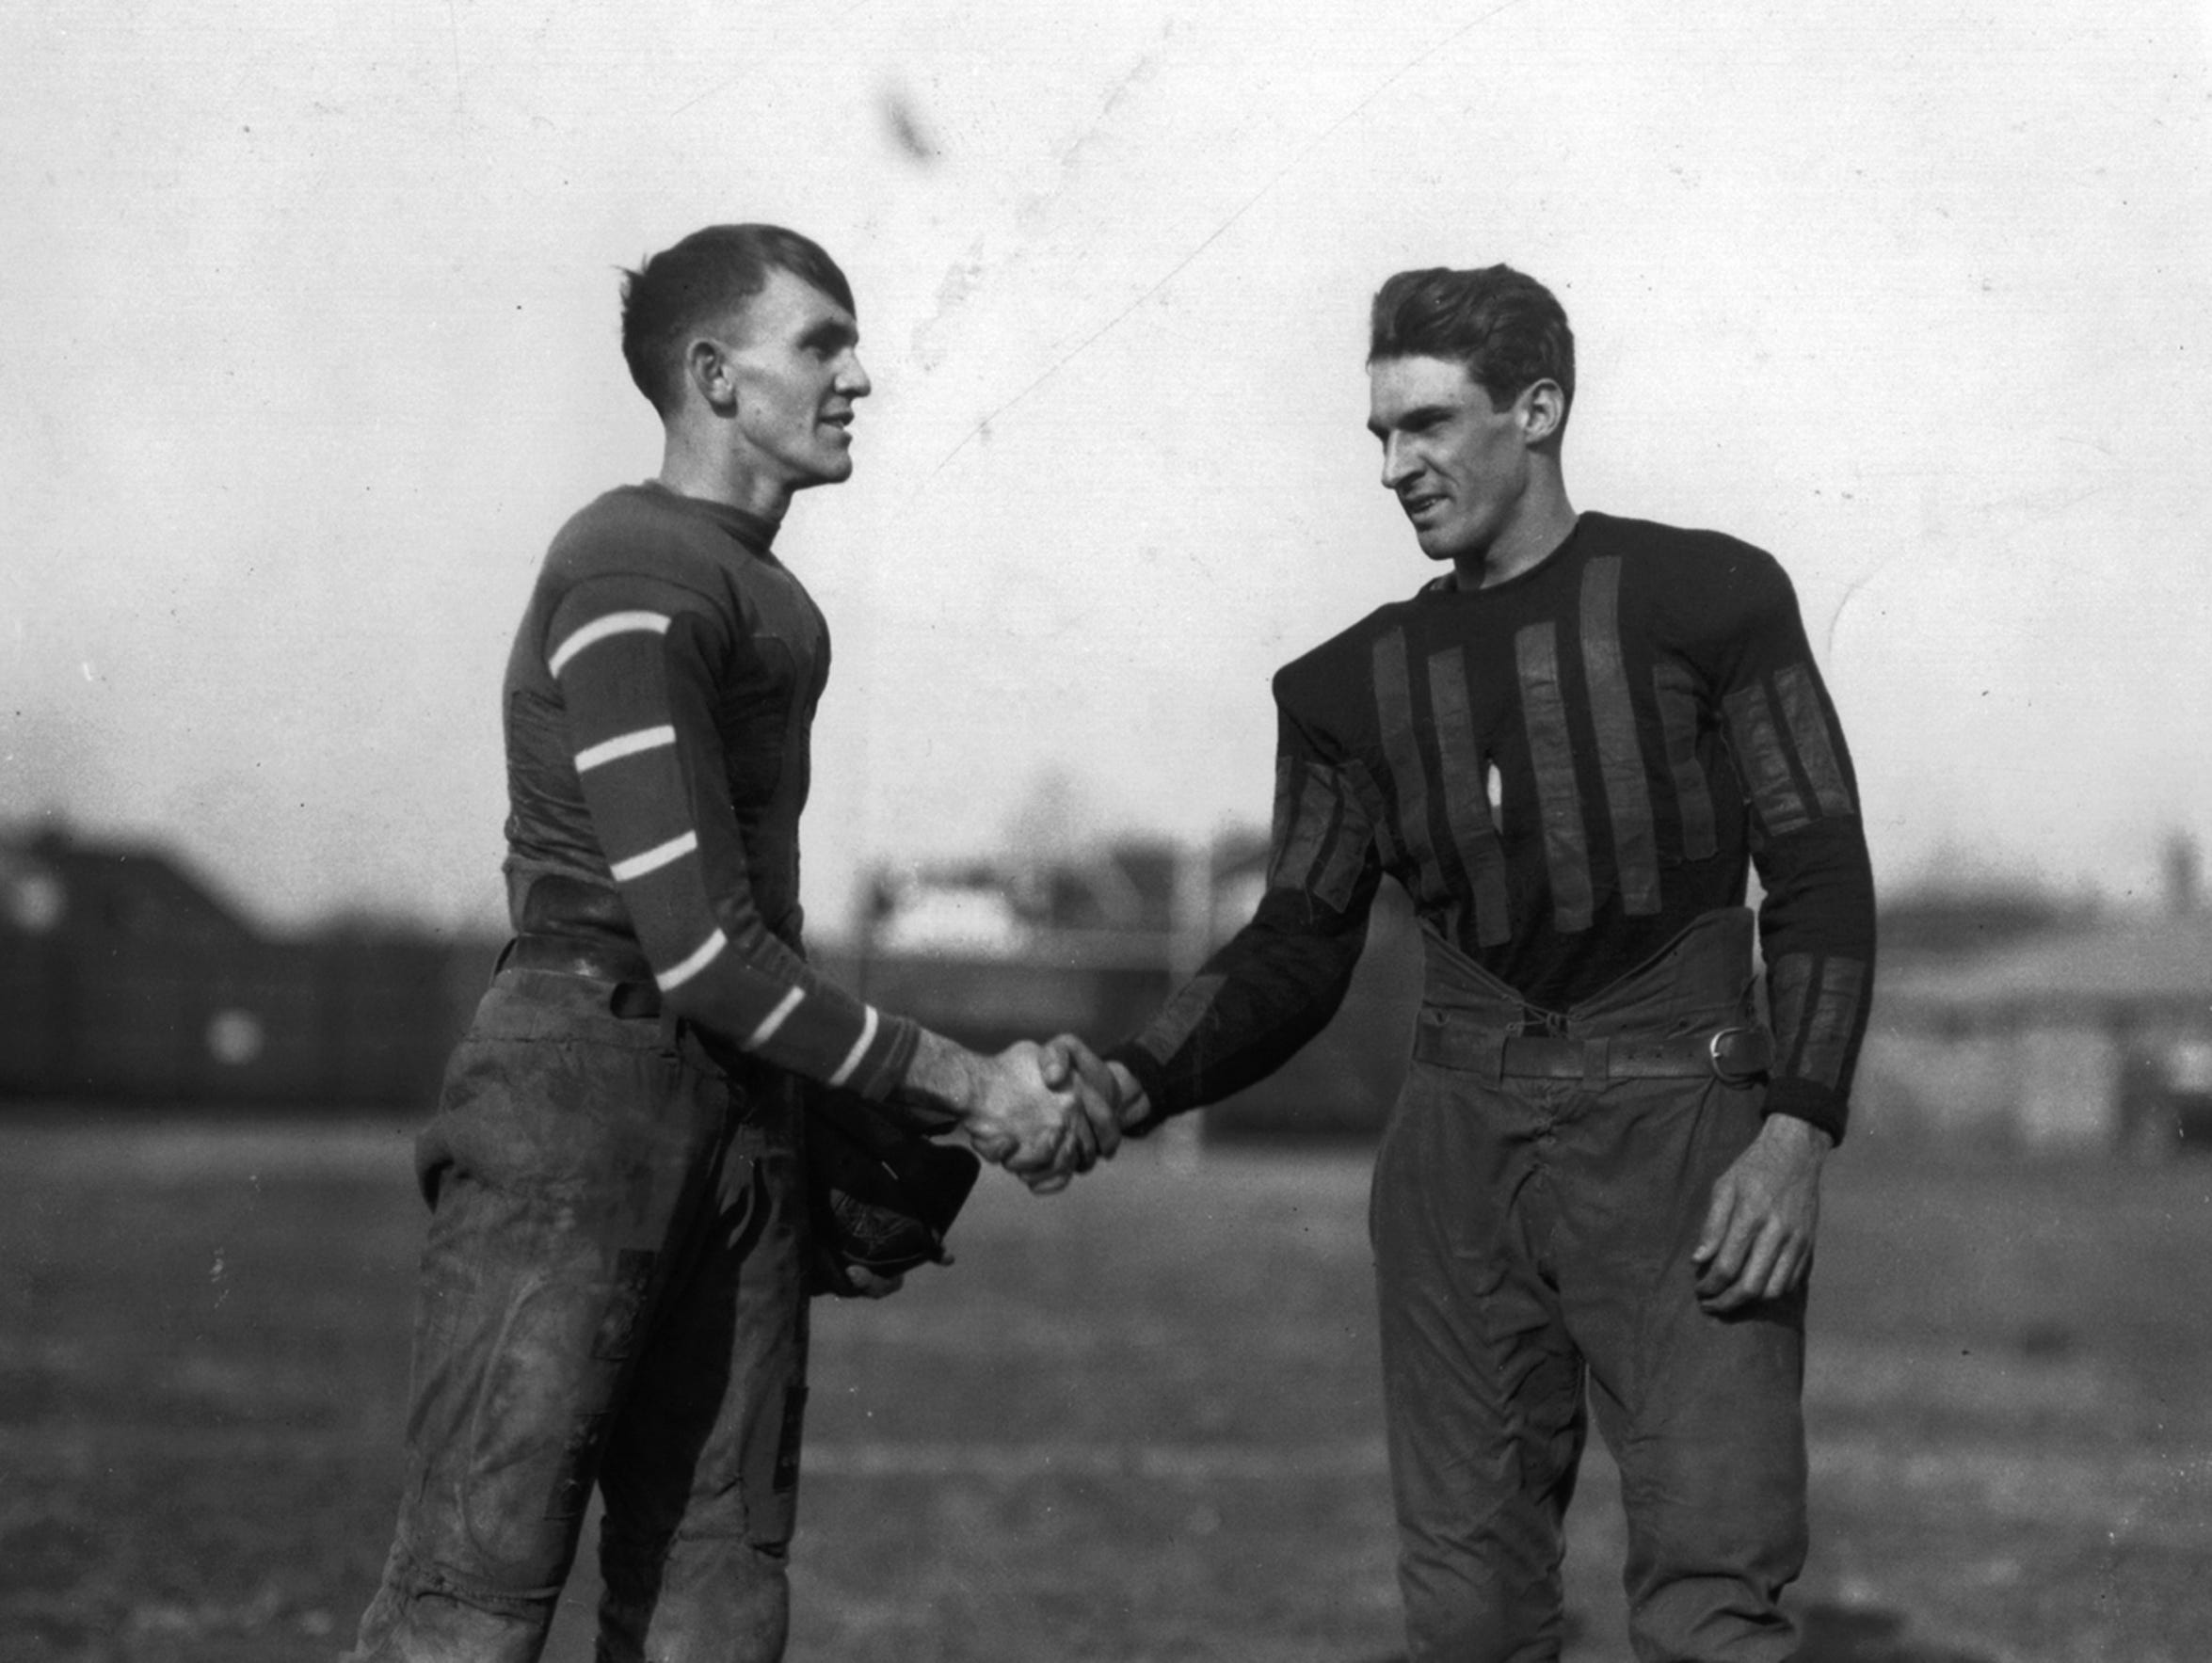 Vanderbilt quarterback Jess Neely, right, played with